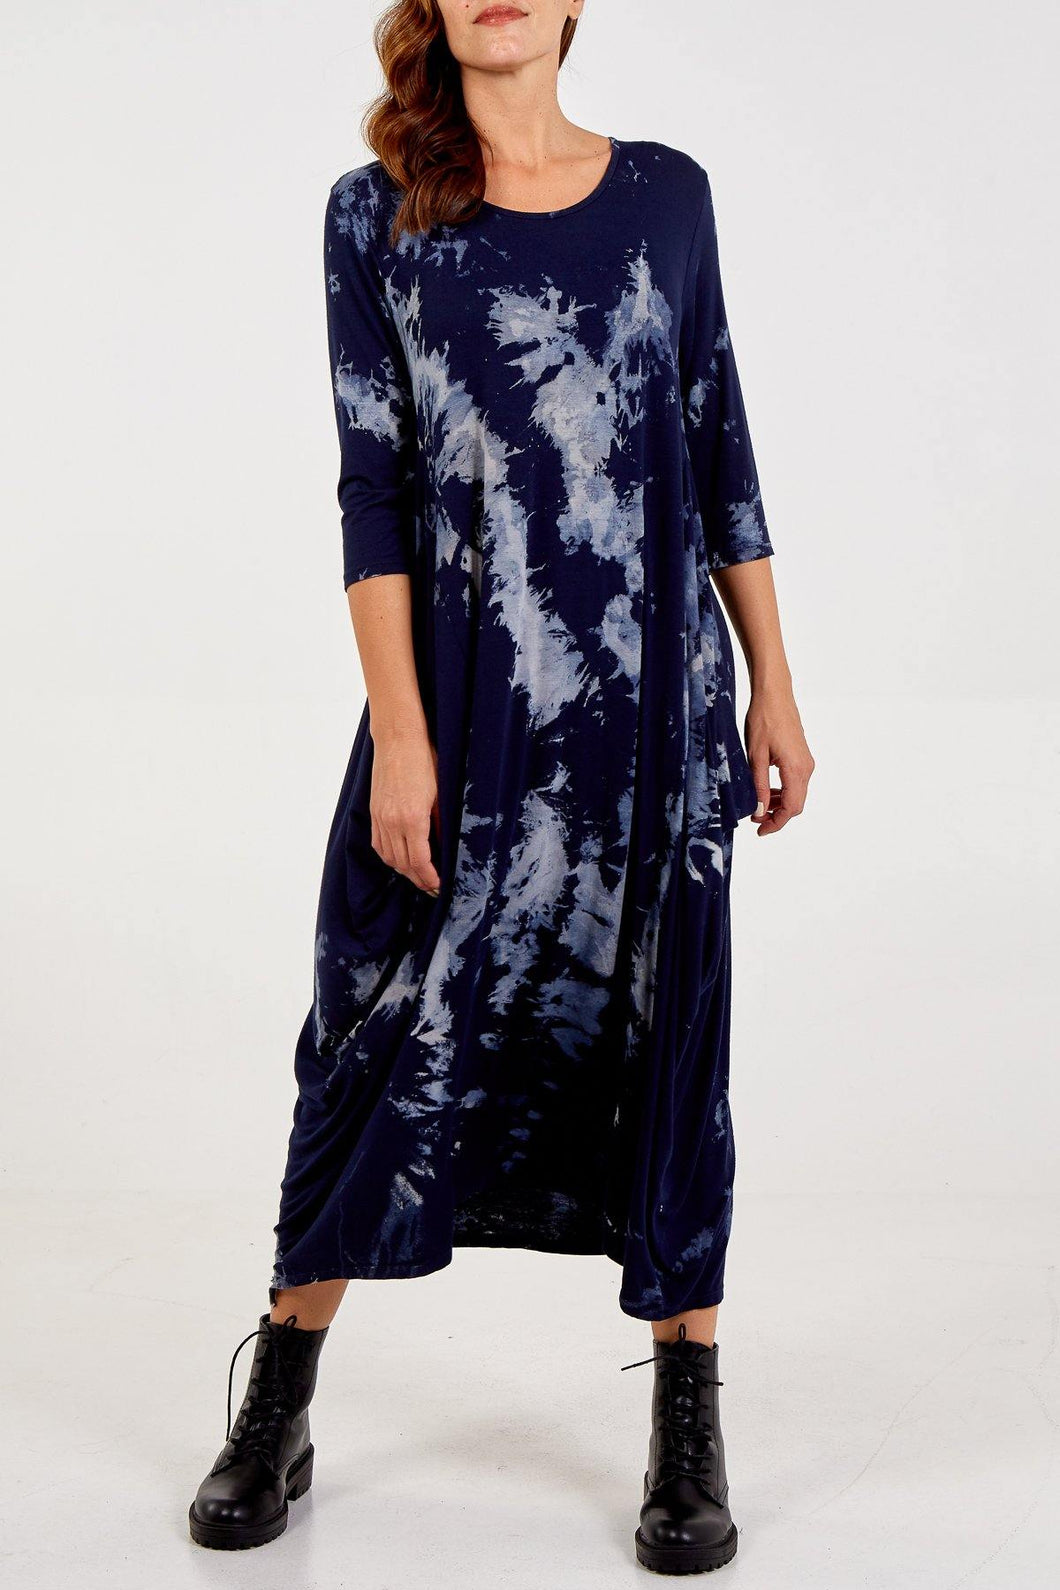 Long Sleeve Tie Dye Parachute Dress/EXPRESS DELIVERY freeshipping - herfreespirit